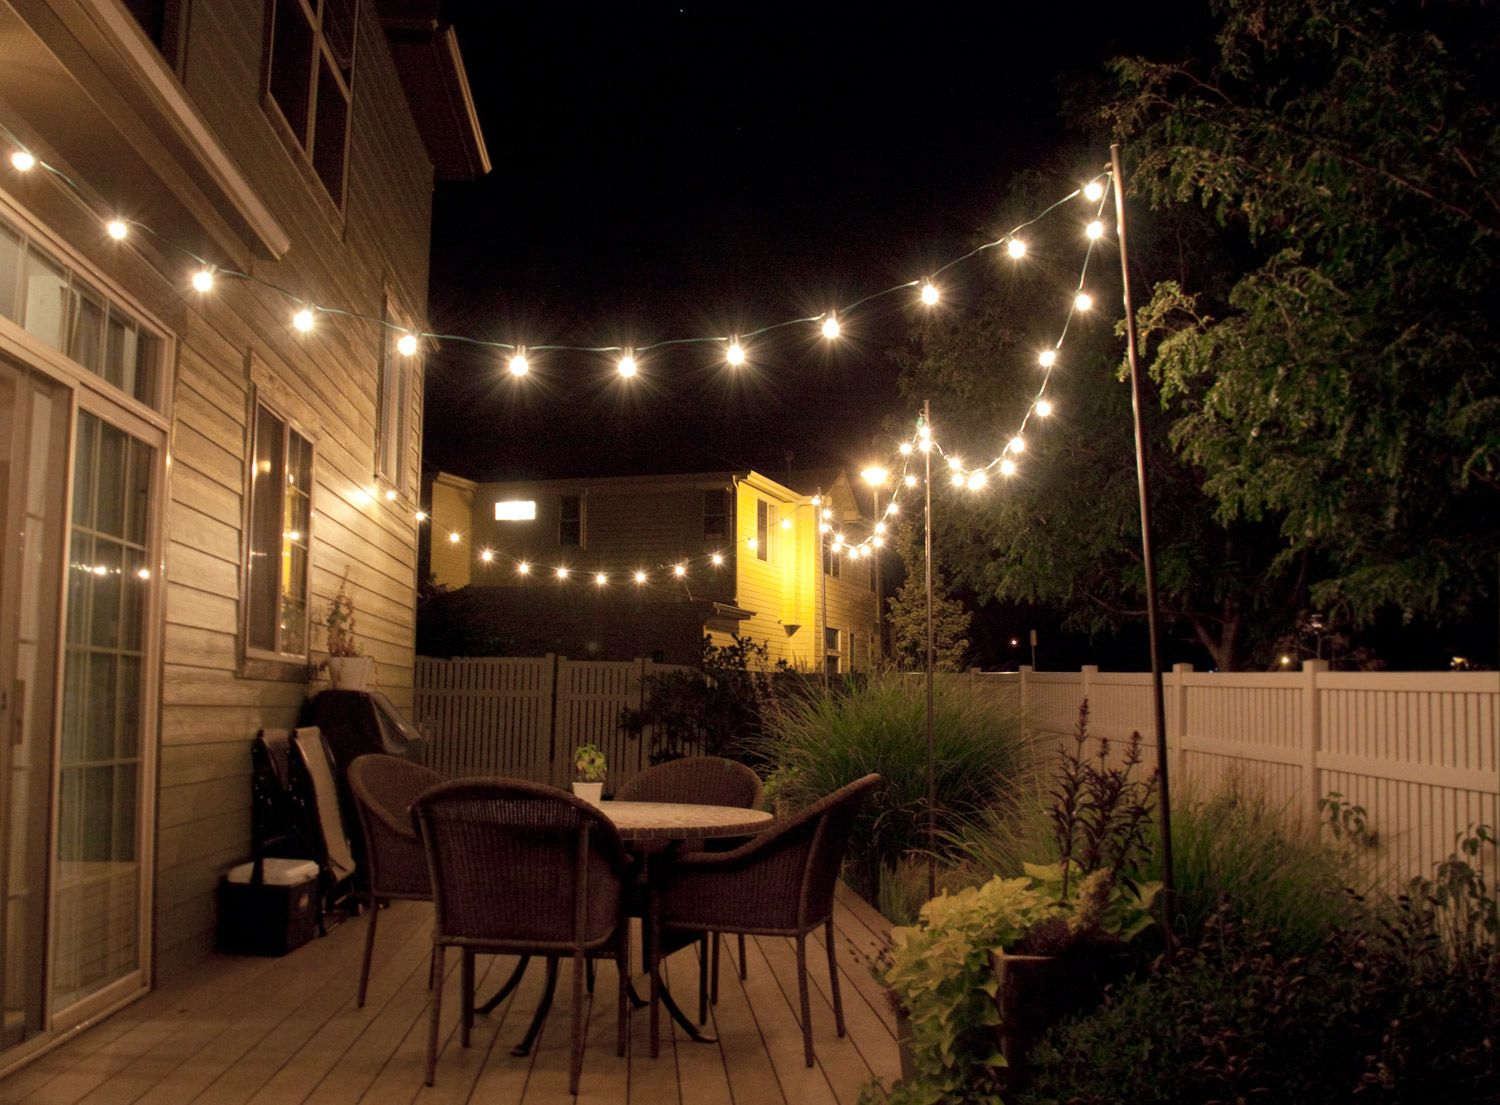 String Patio Lights Magnificent How To Make Inexpensive Poles To Hang String Lights On  Café Style Decorating Inspiration